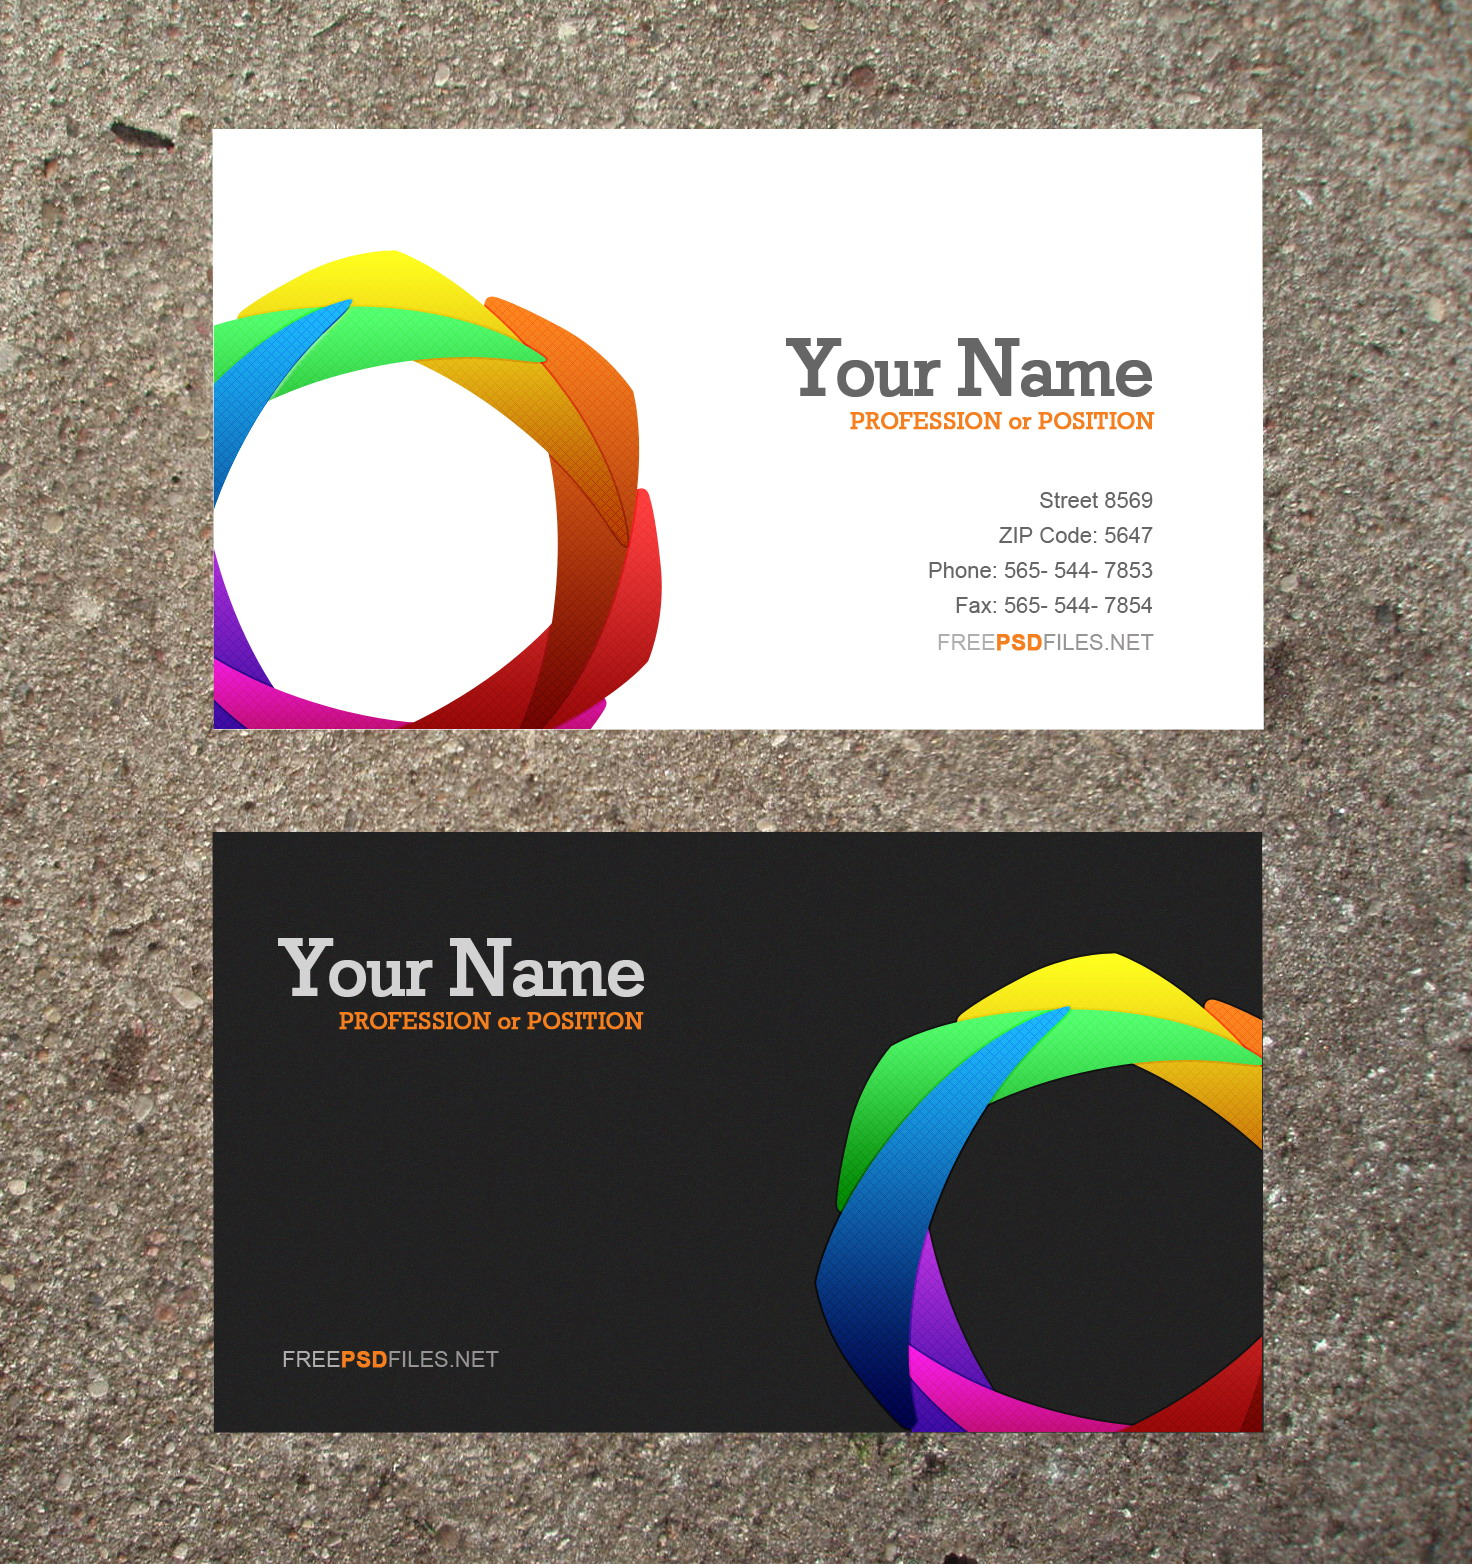 20 Free PSD Business Card Templates Images Free Business Card Template Free Business Card PSD